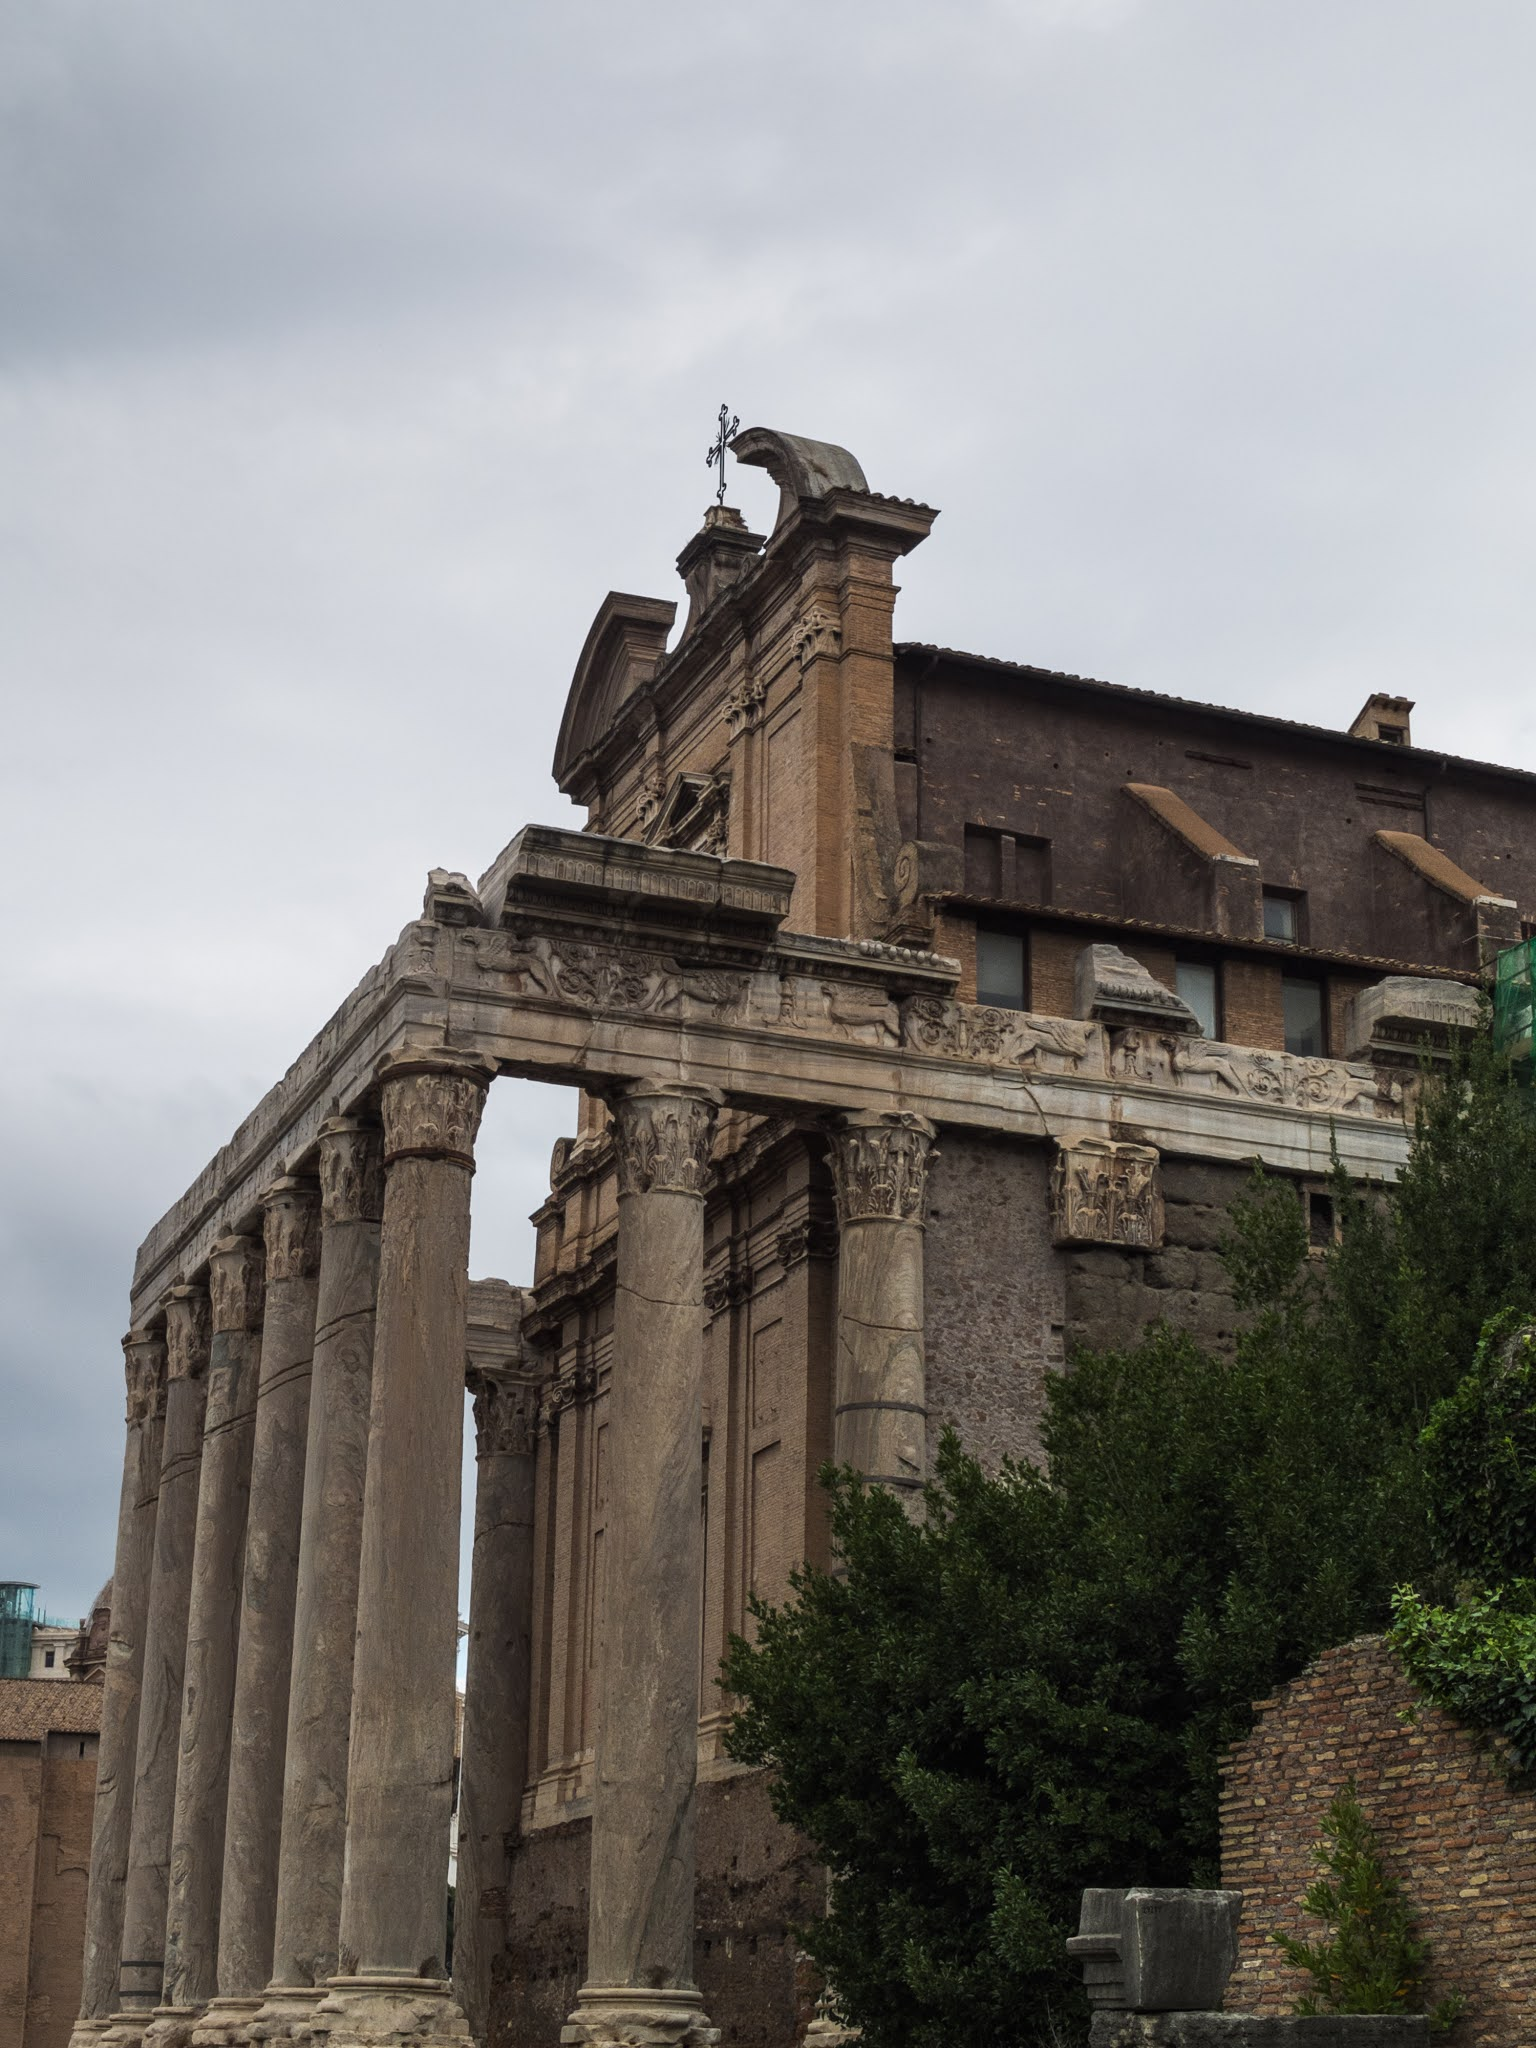 Side view of the temples of Antoninus and Faustina in the Roman Forum.